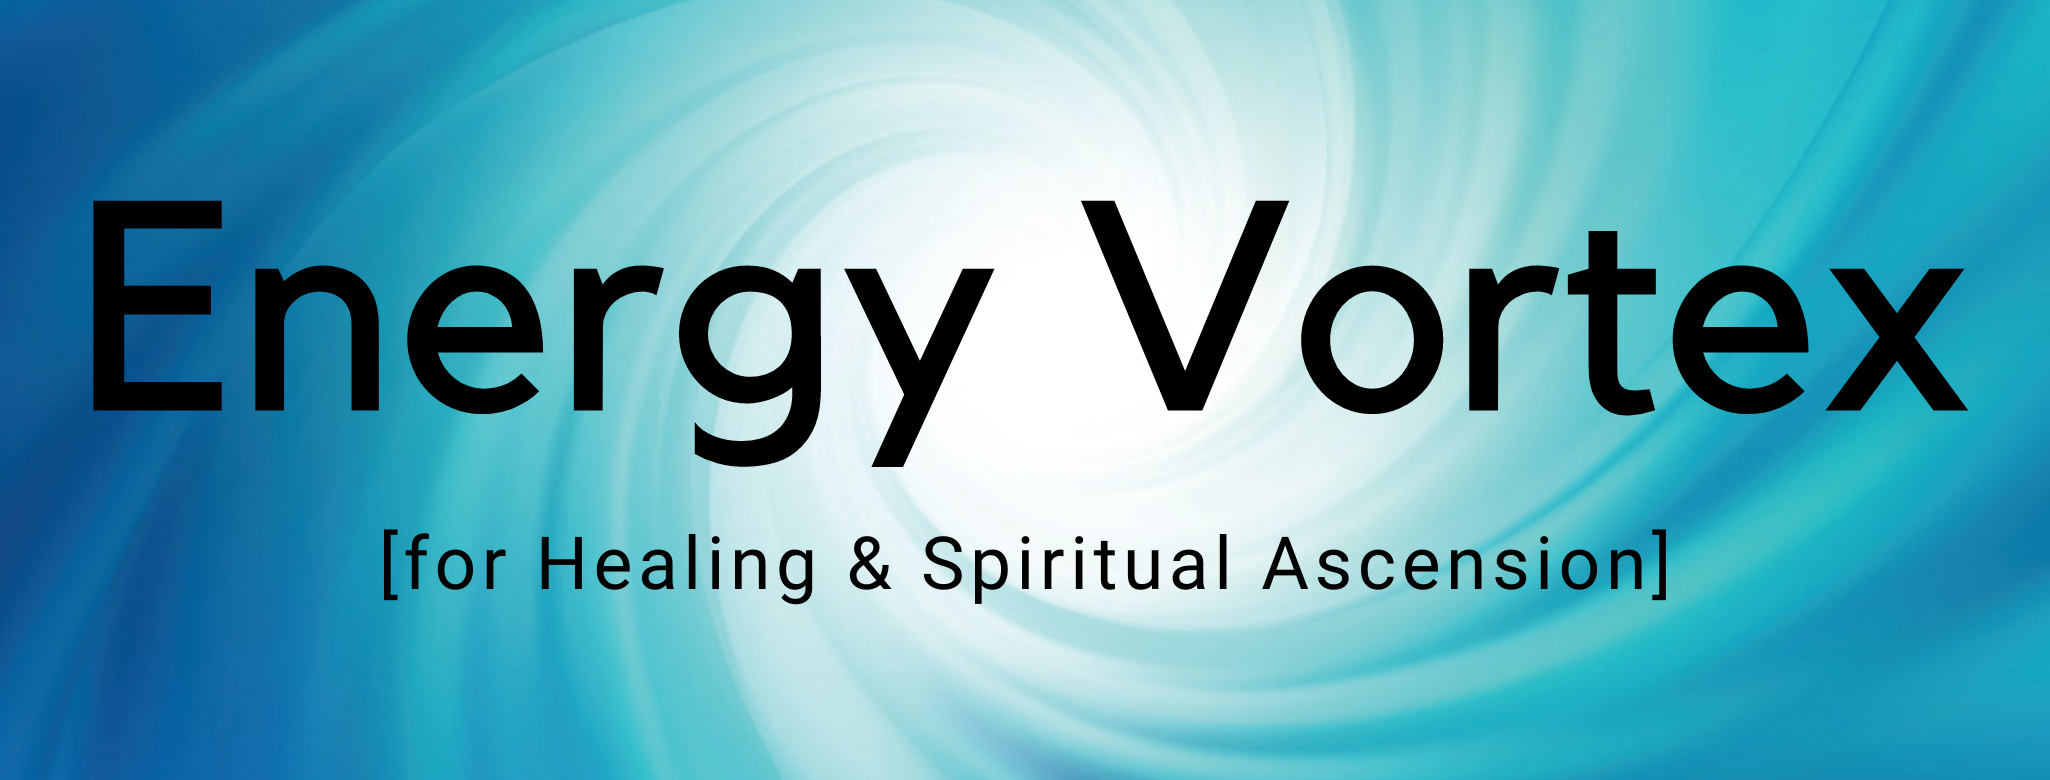 Energy Vortex for Healing and Spiritual Ascension by Jennifer Von Behren